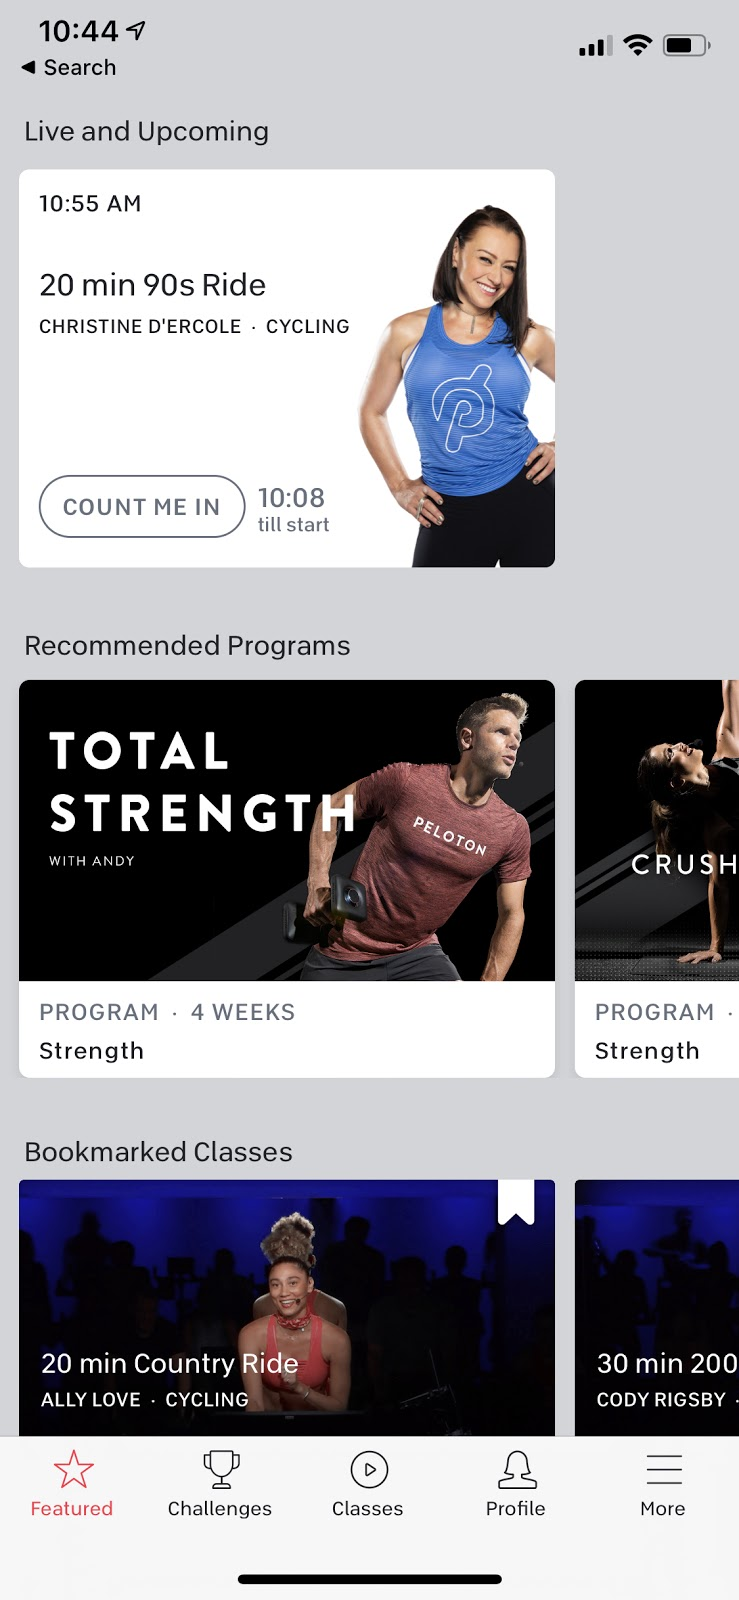 peloton mobile app live and upcoming classes